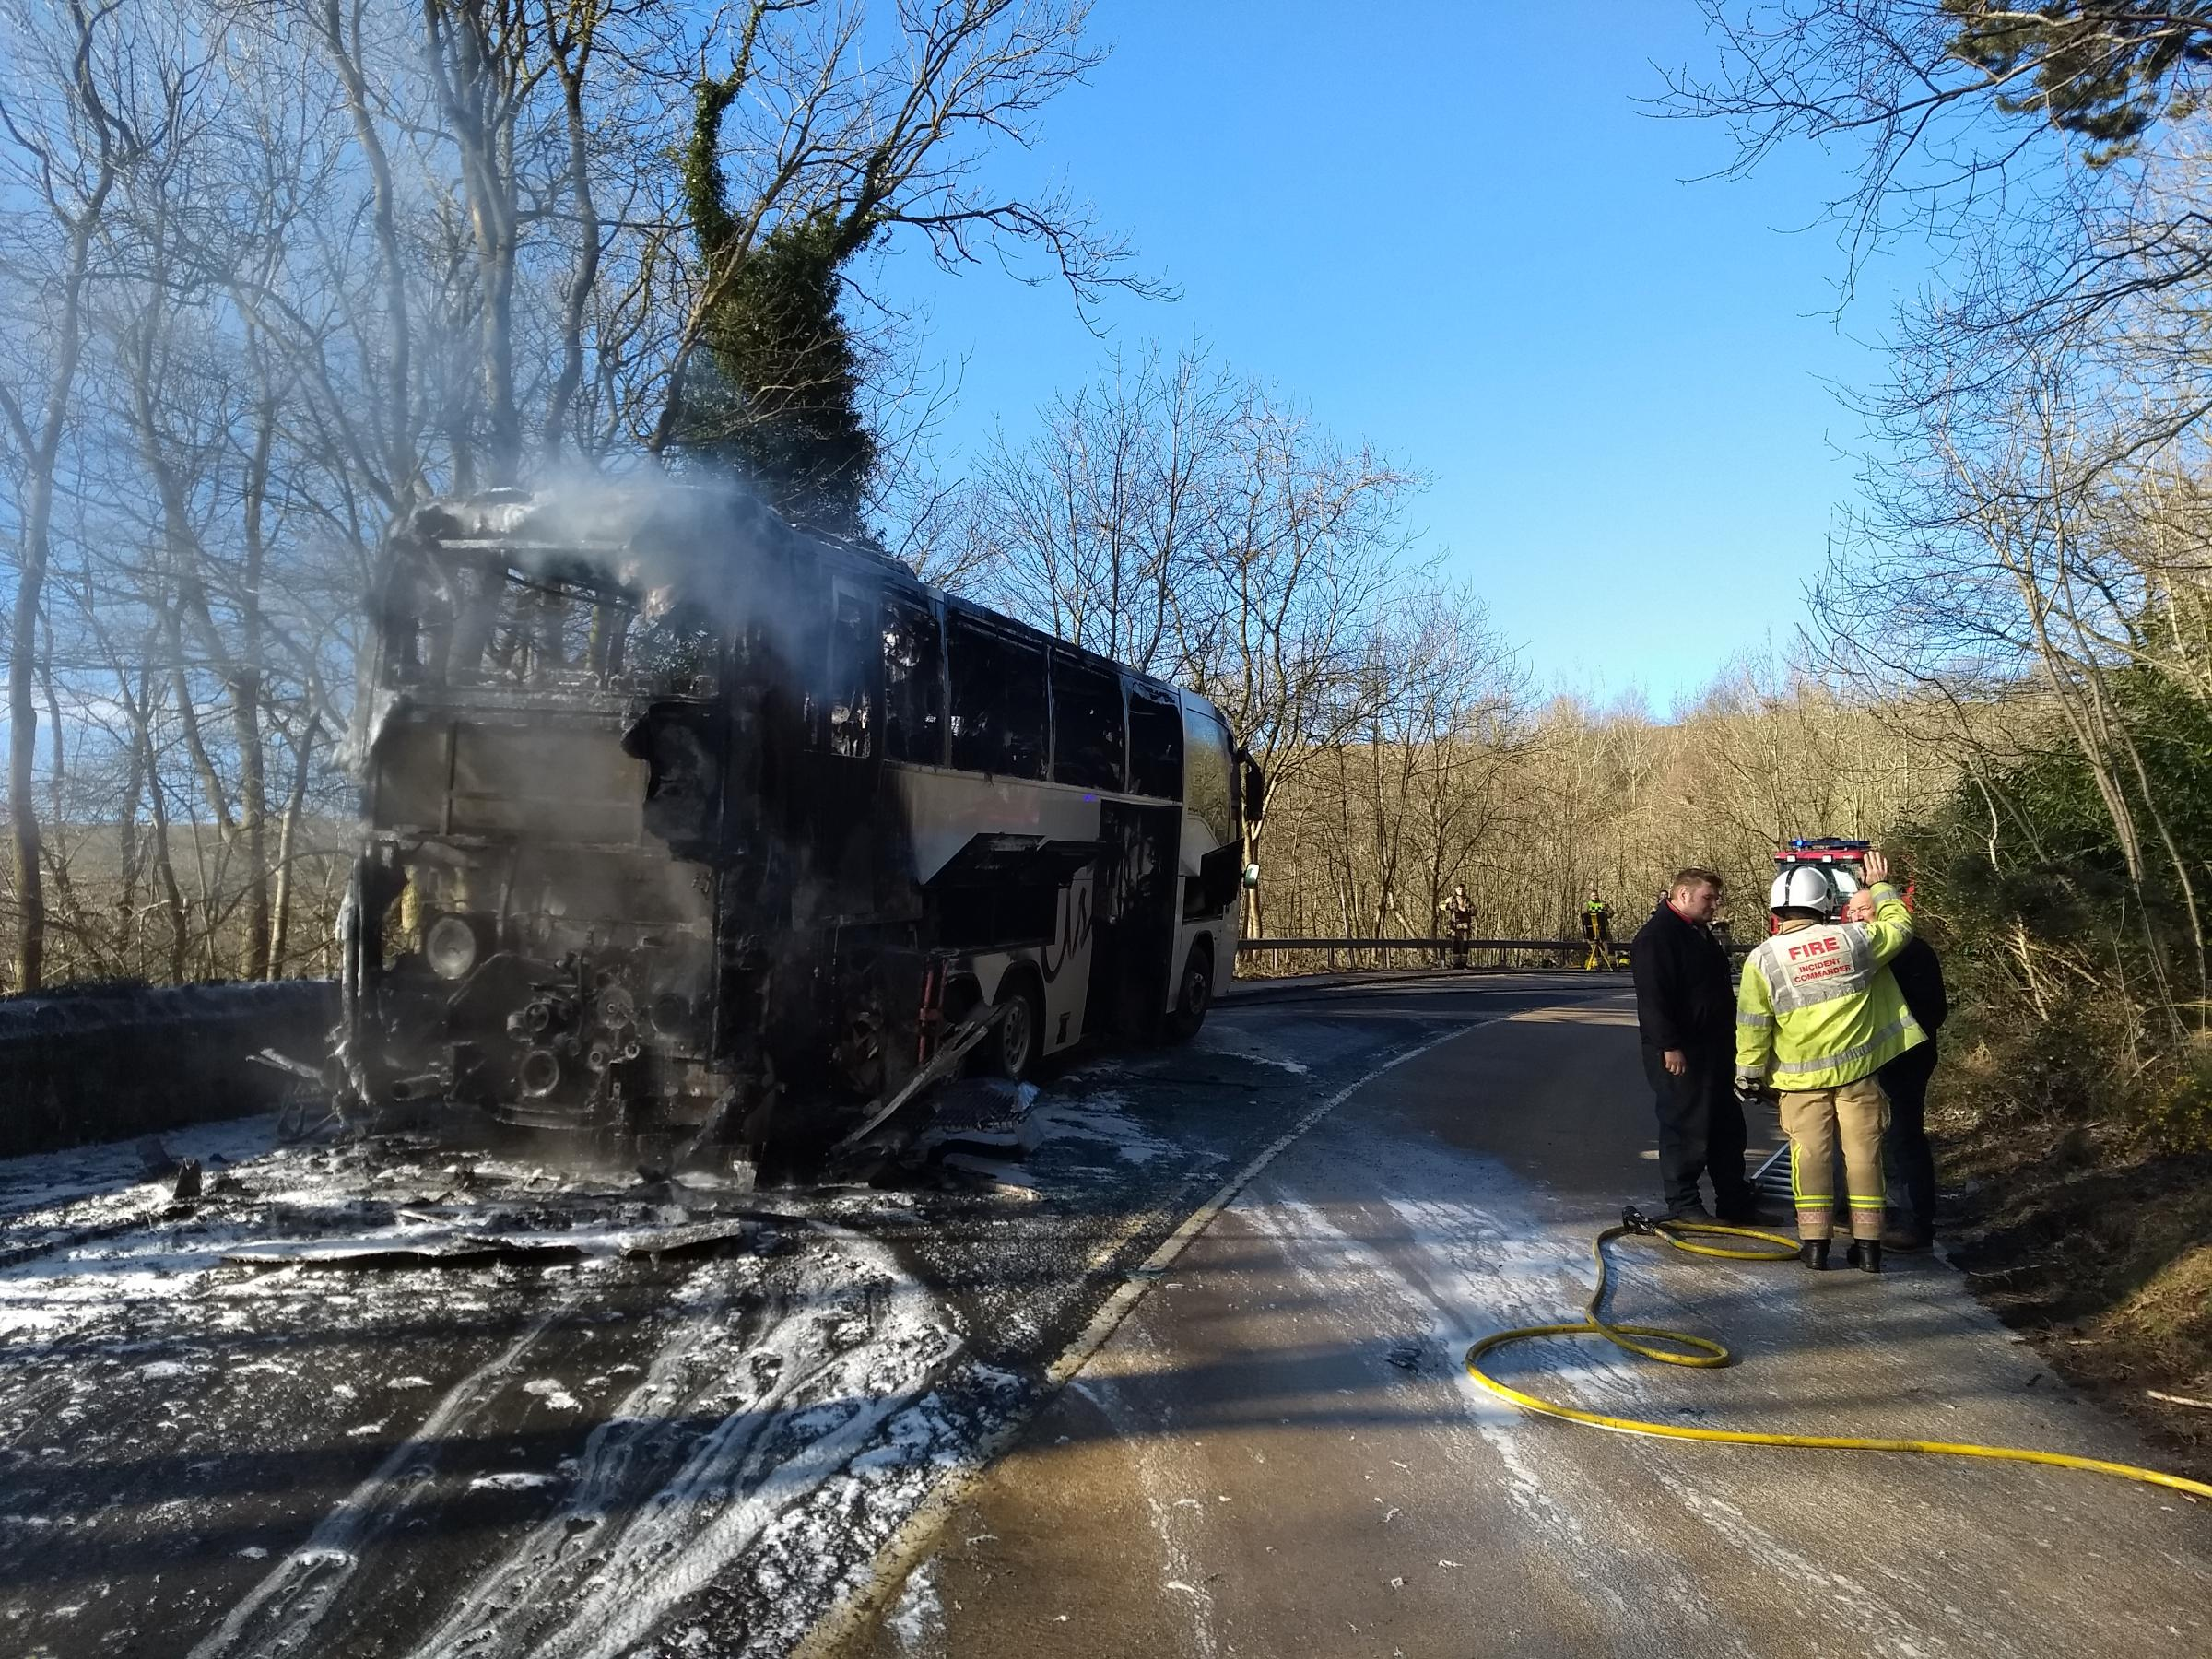 The coach was extensively damaged.